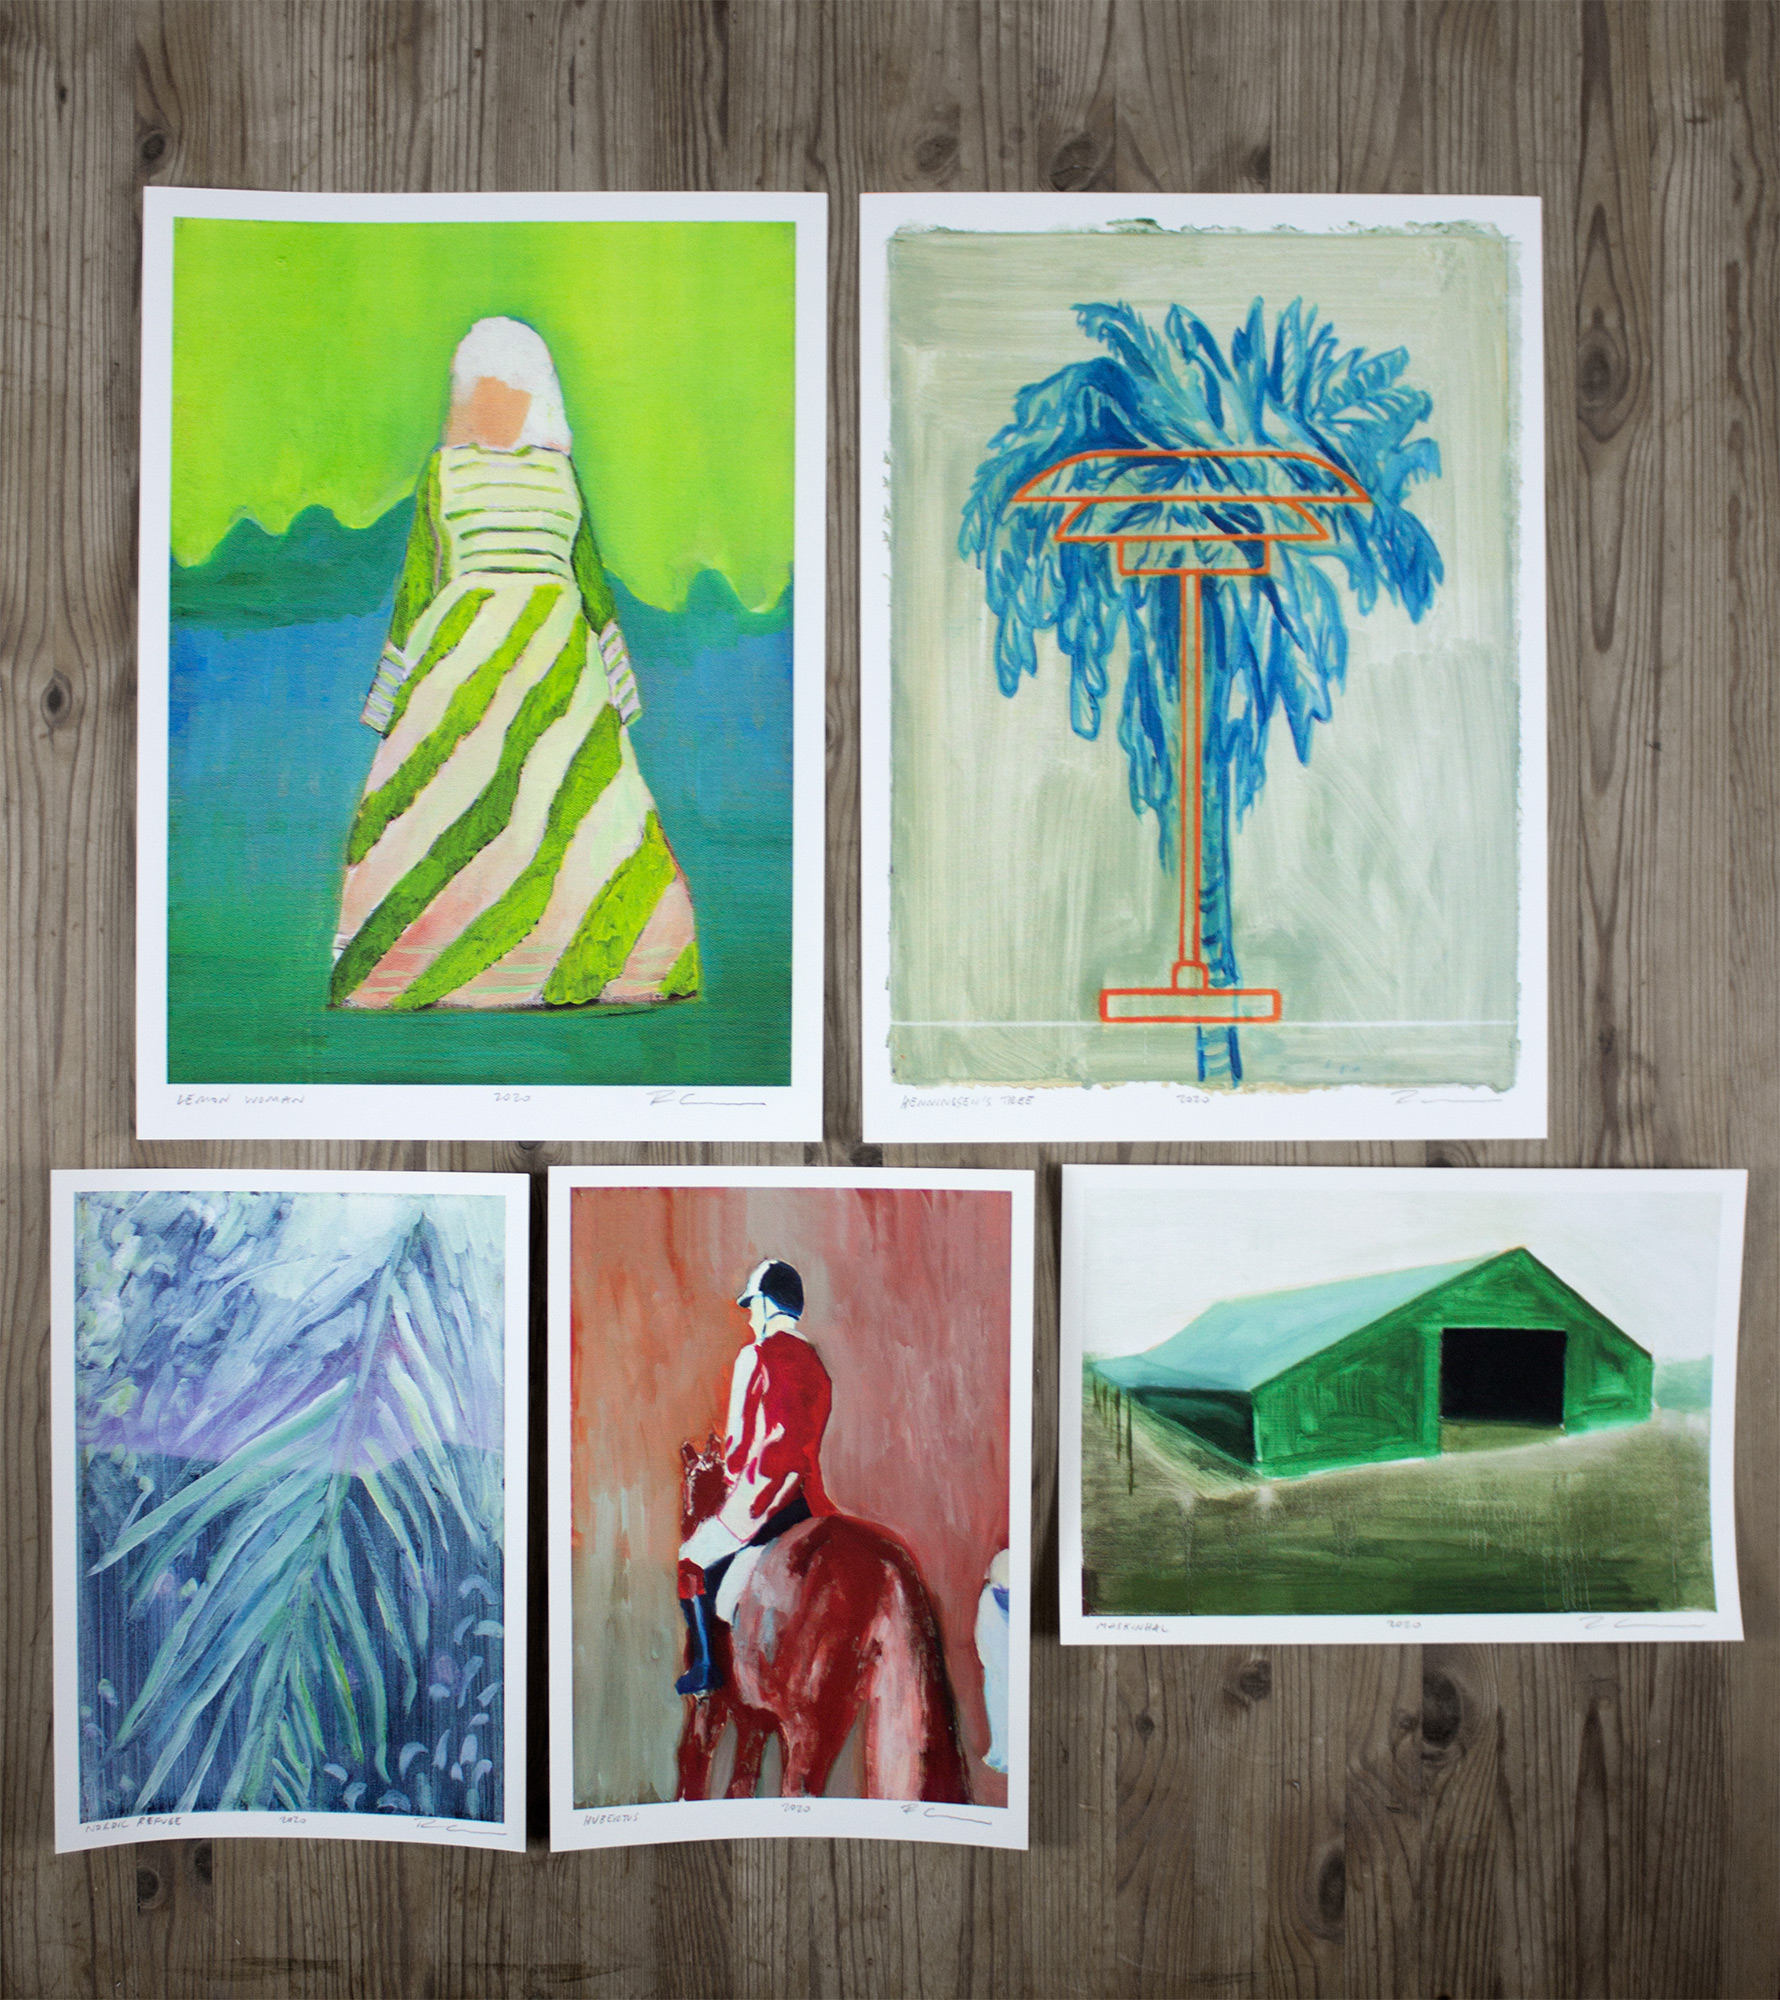 posters-prints, giclee-print, aesthetic, figurative, graphical, illustrative, still-life, architecture, botany, beige, blue, brown, orange, turquoise, ink, paper, beautiful, contemporary-art, copenhagen, danish, decorative, design, interior, interior-design, modern, modern-art, nordic, posters, prints, scandinavien, trees, Buy original high quality art. Paintings, drawings, limited edition prints & posters by talented artists.